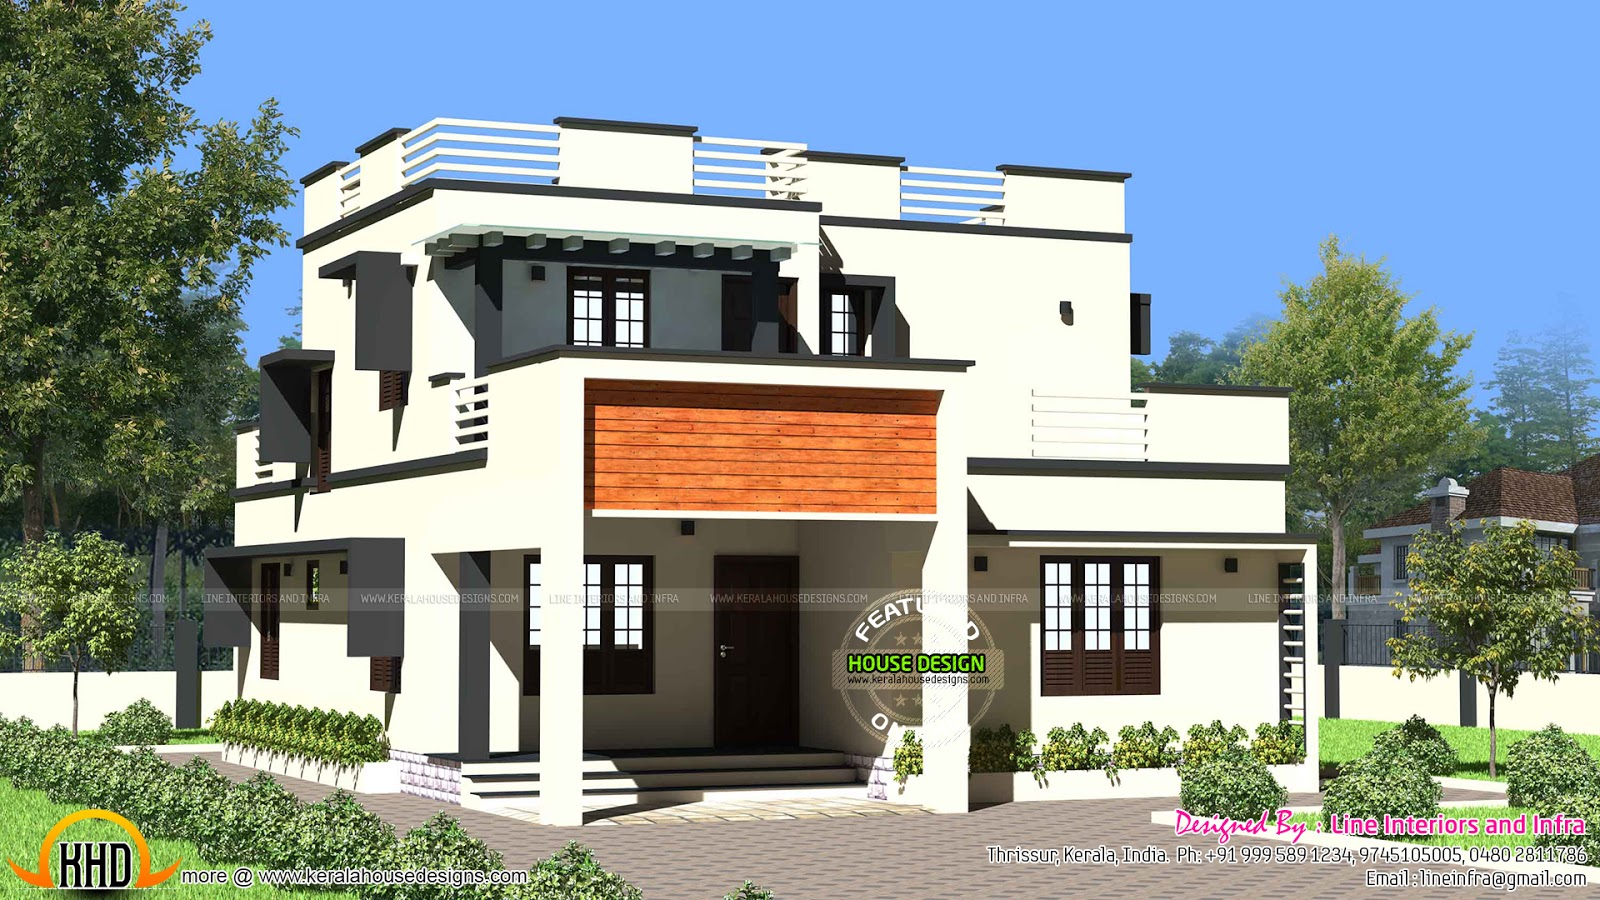 1900 sq ft modern flat roof house kerala home design and - Flat roof home designs ...